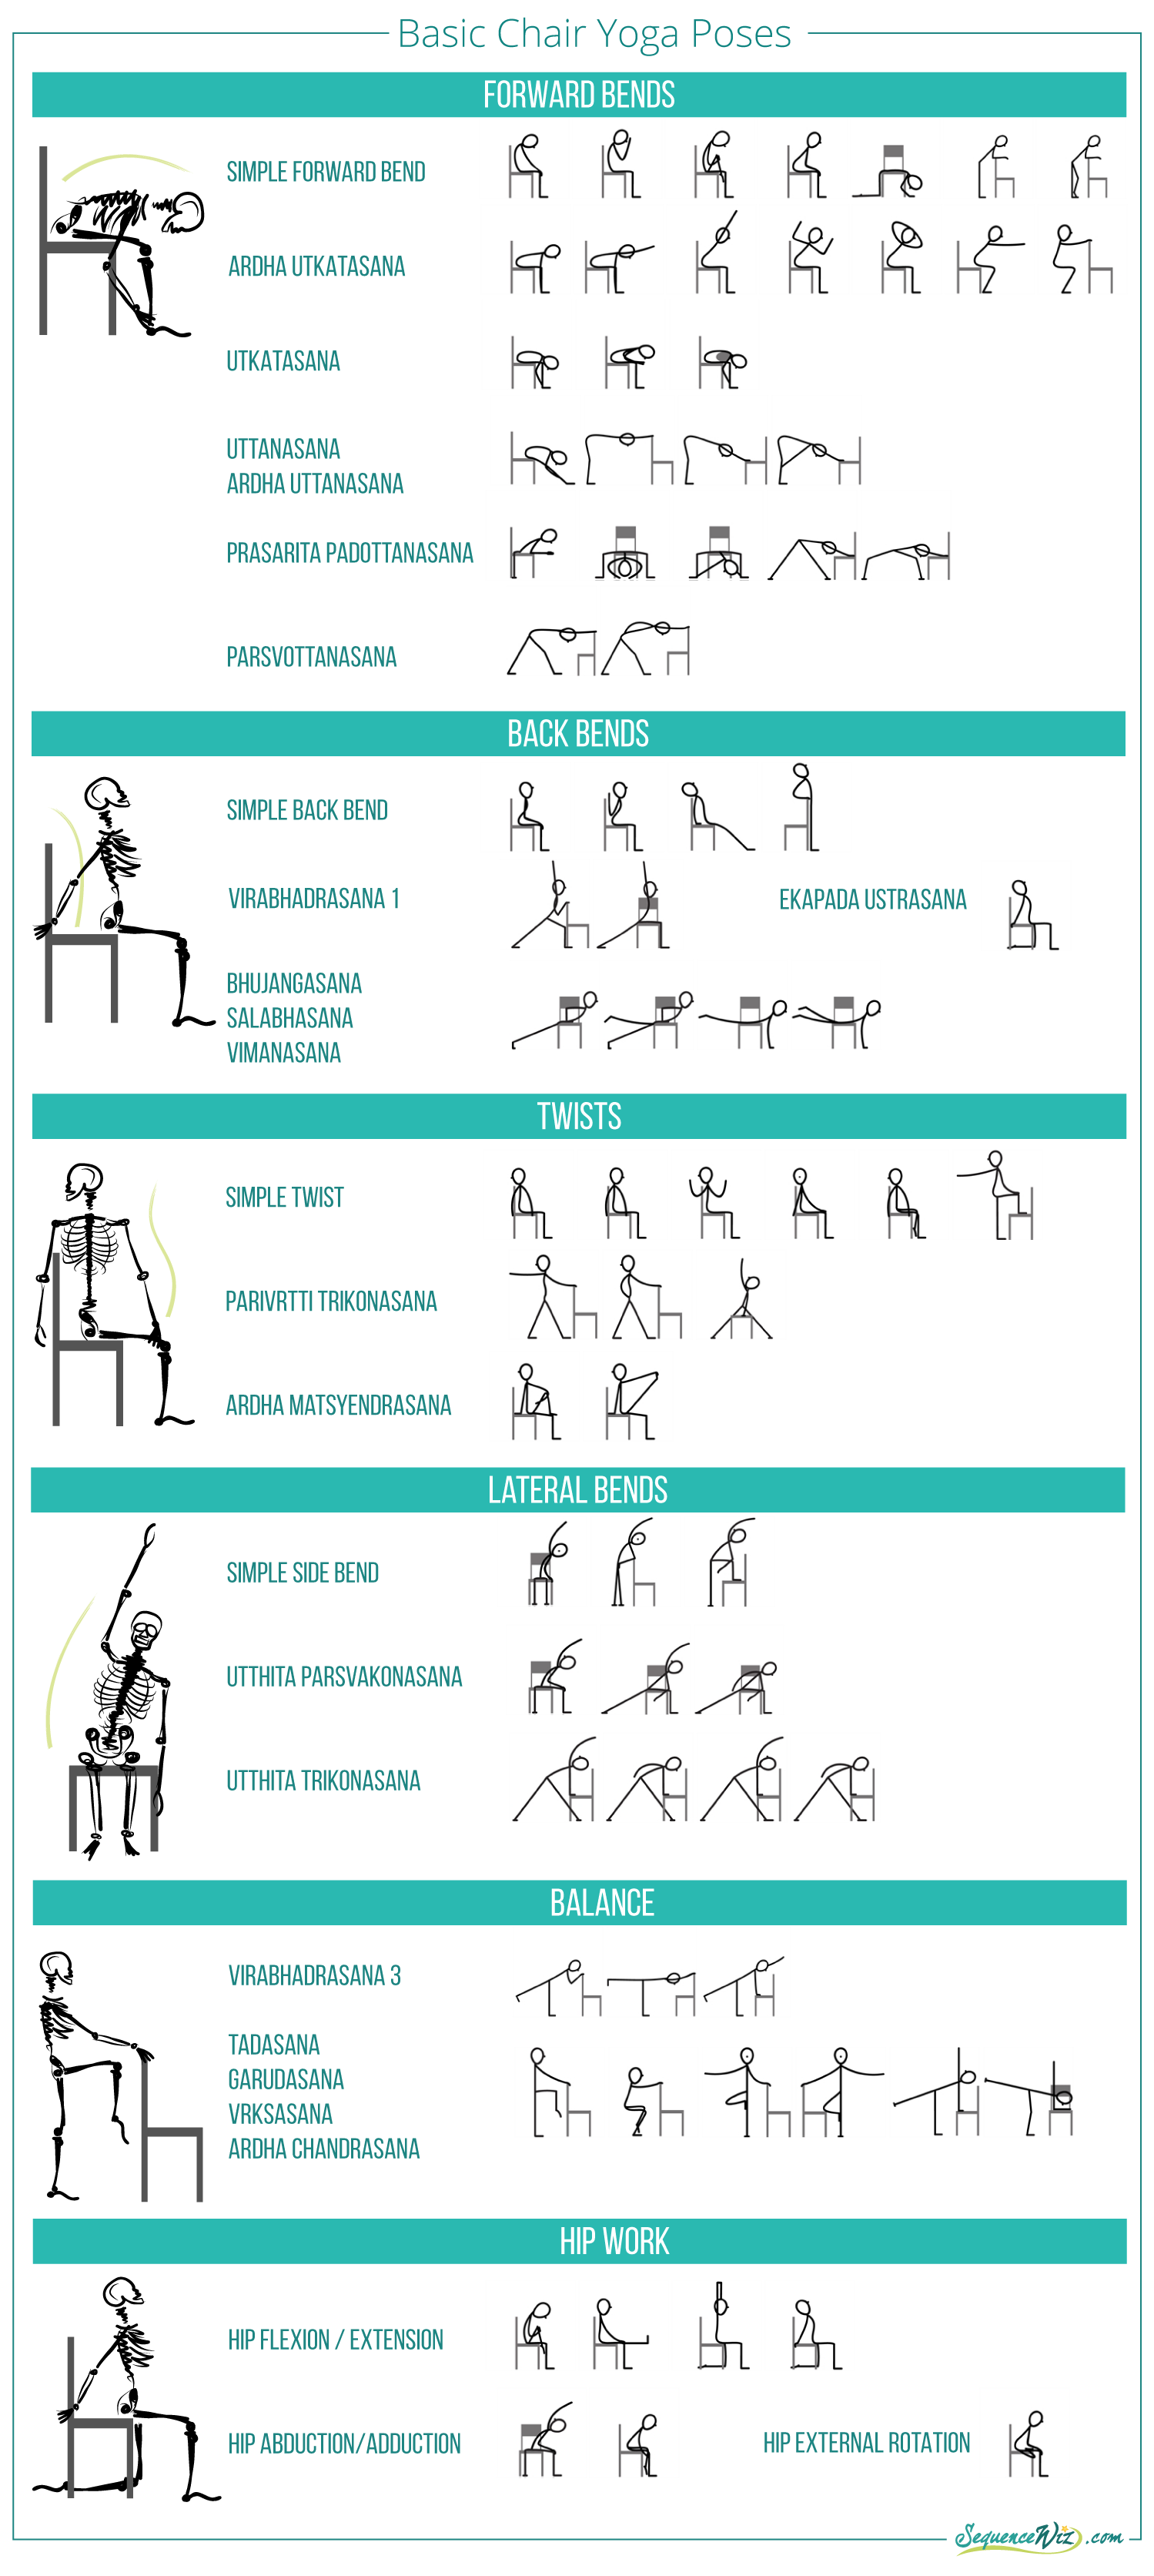 A list of basic chair yoga poses - Sequence Wiz